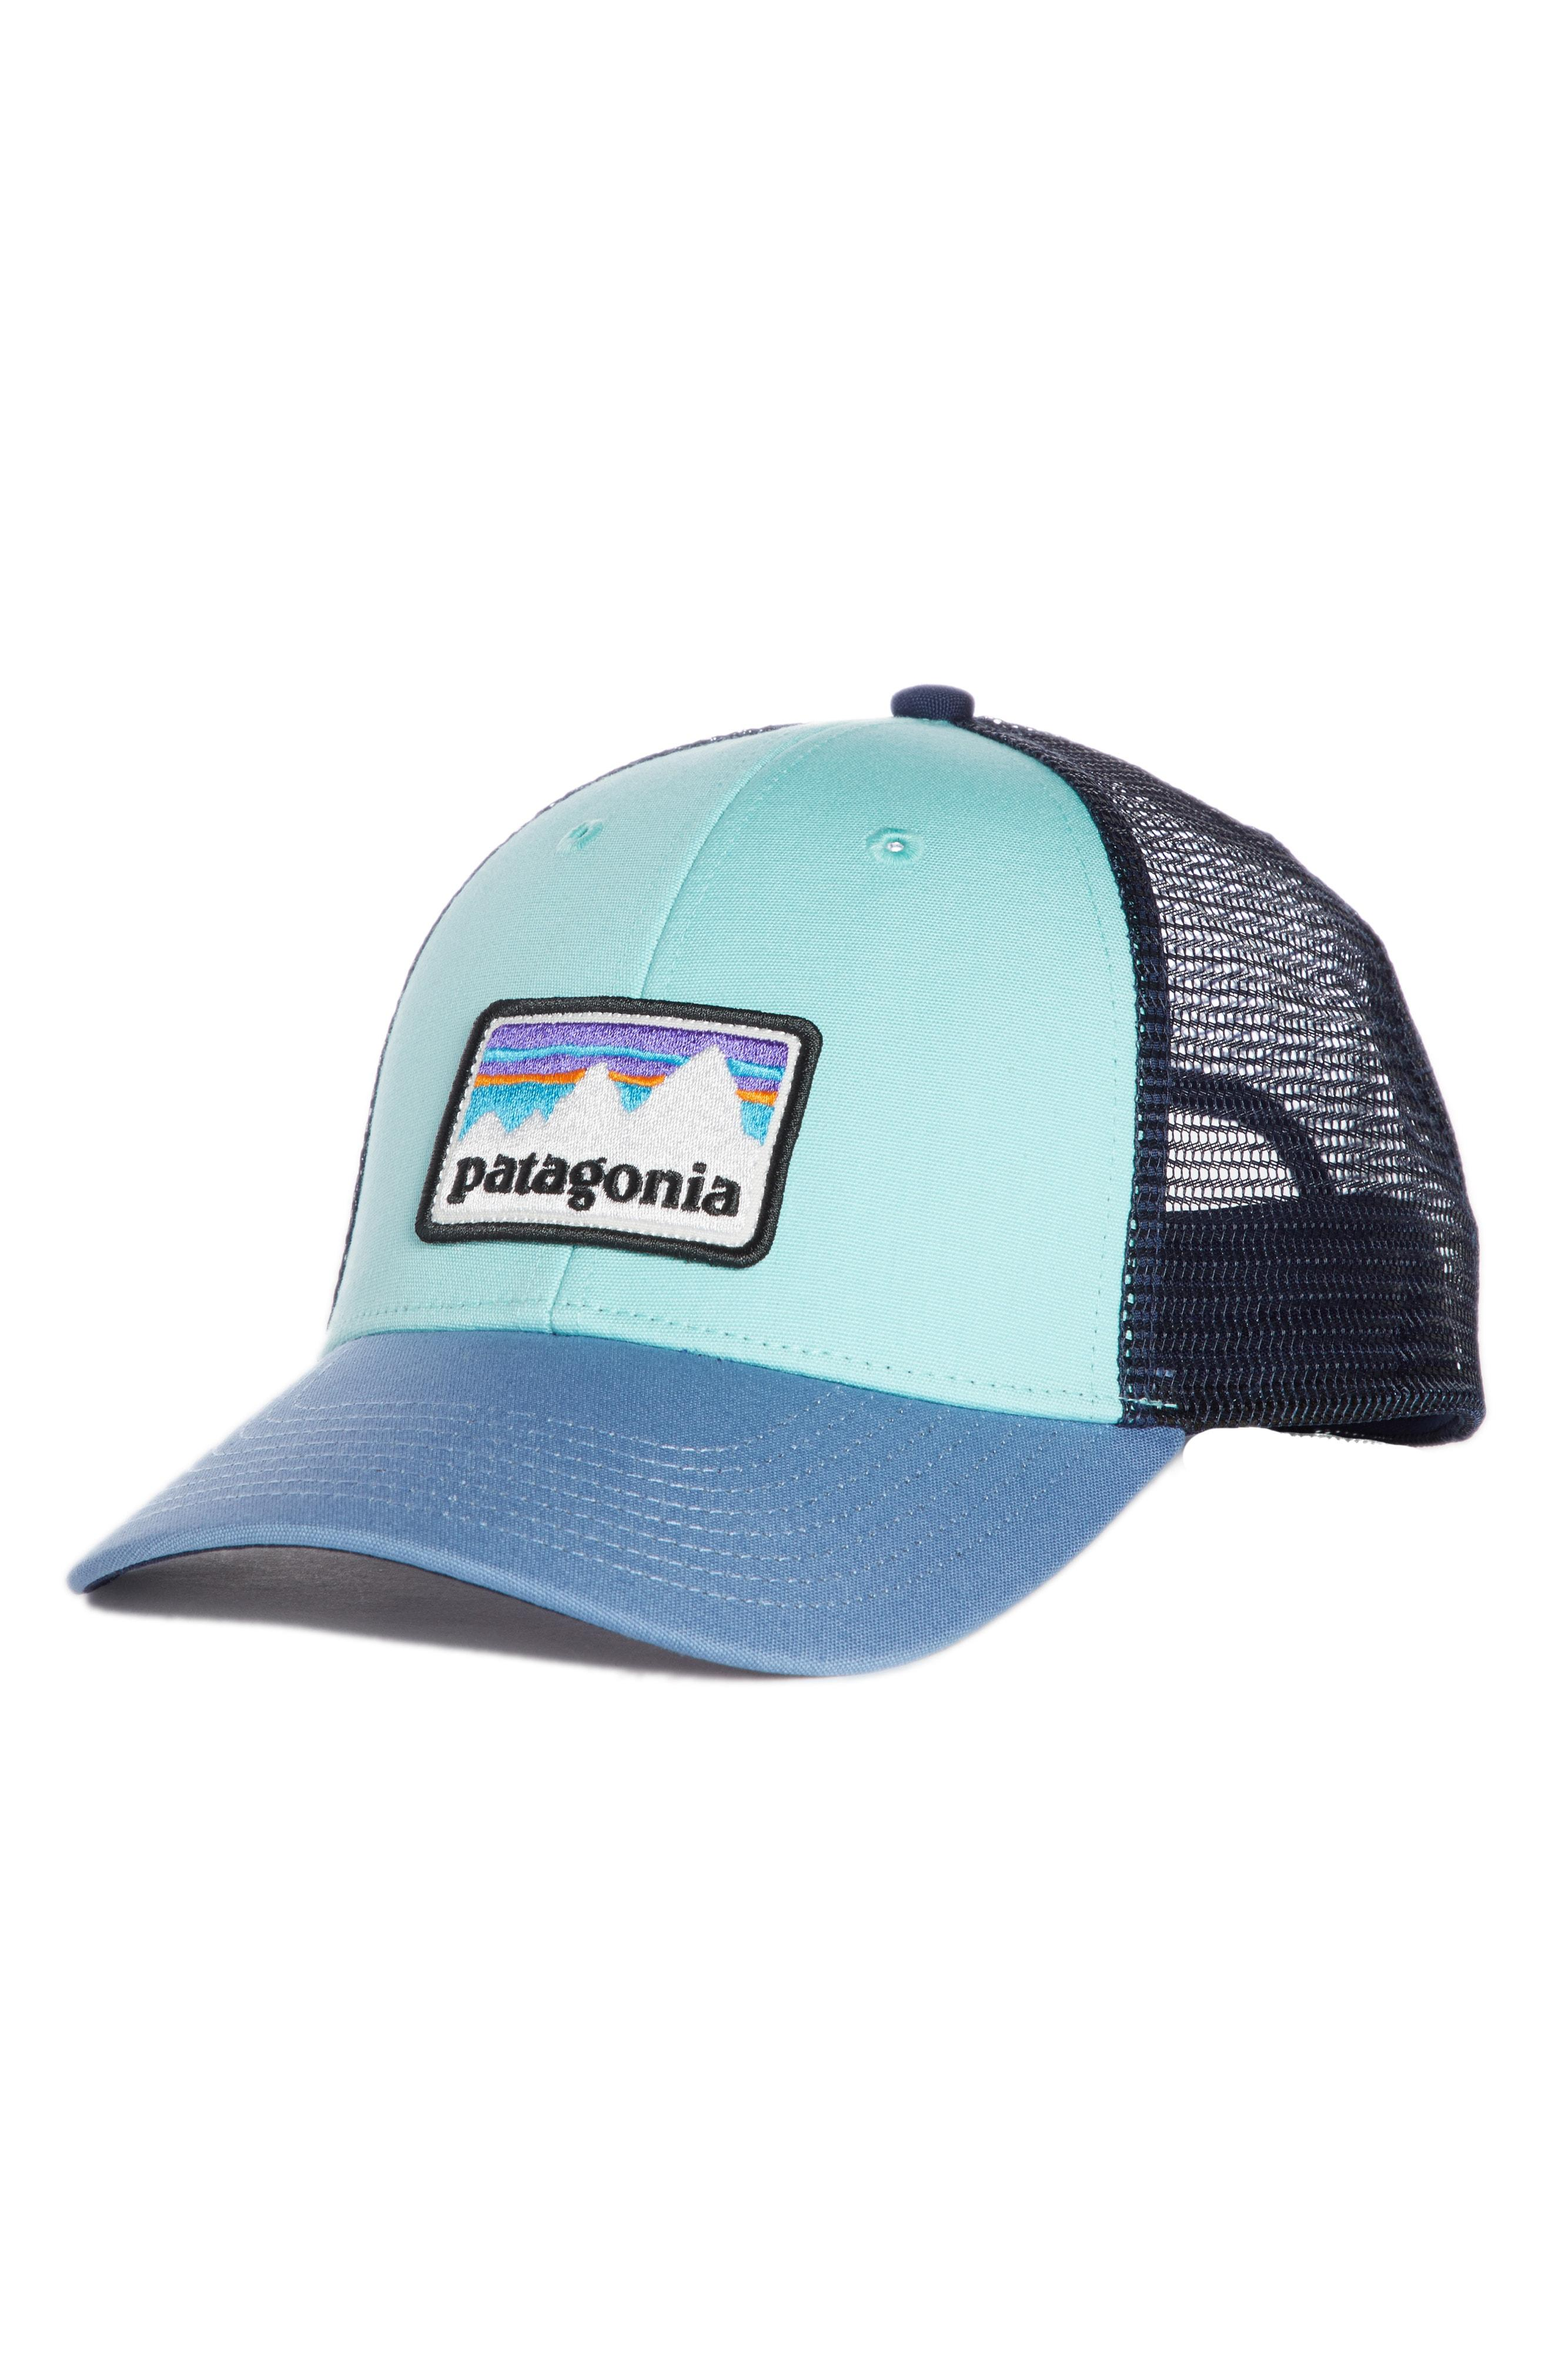 51b6a95387f13 Lyst - Patagonia Shop Sticker Patch Lopro Trucker Hat in Blue